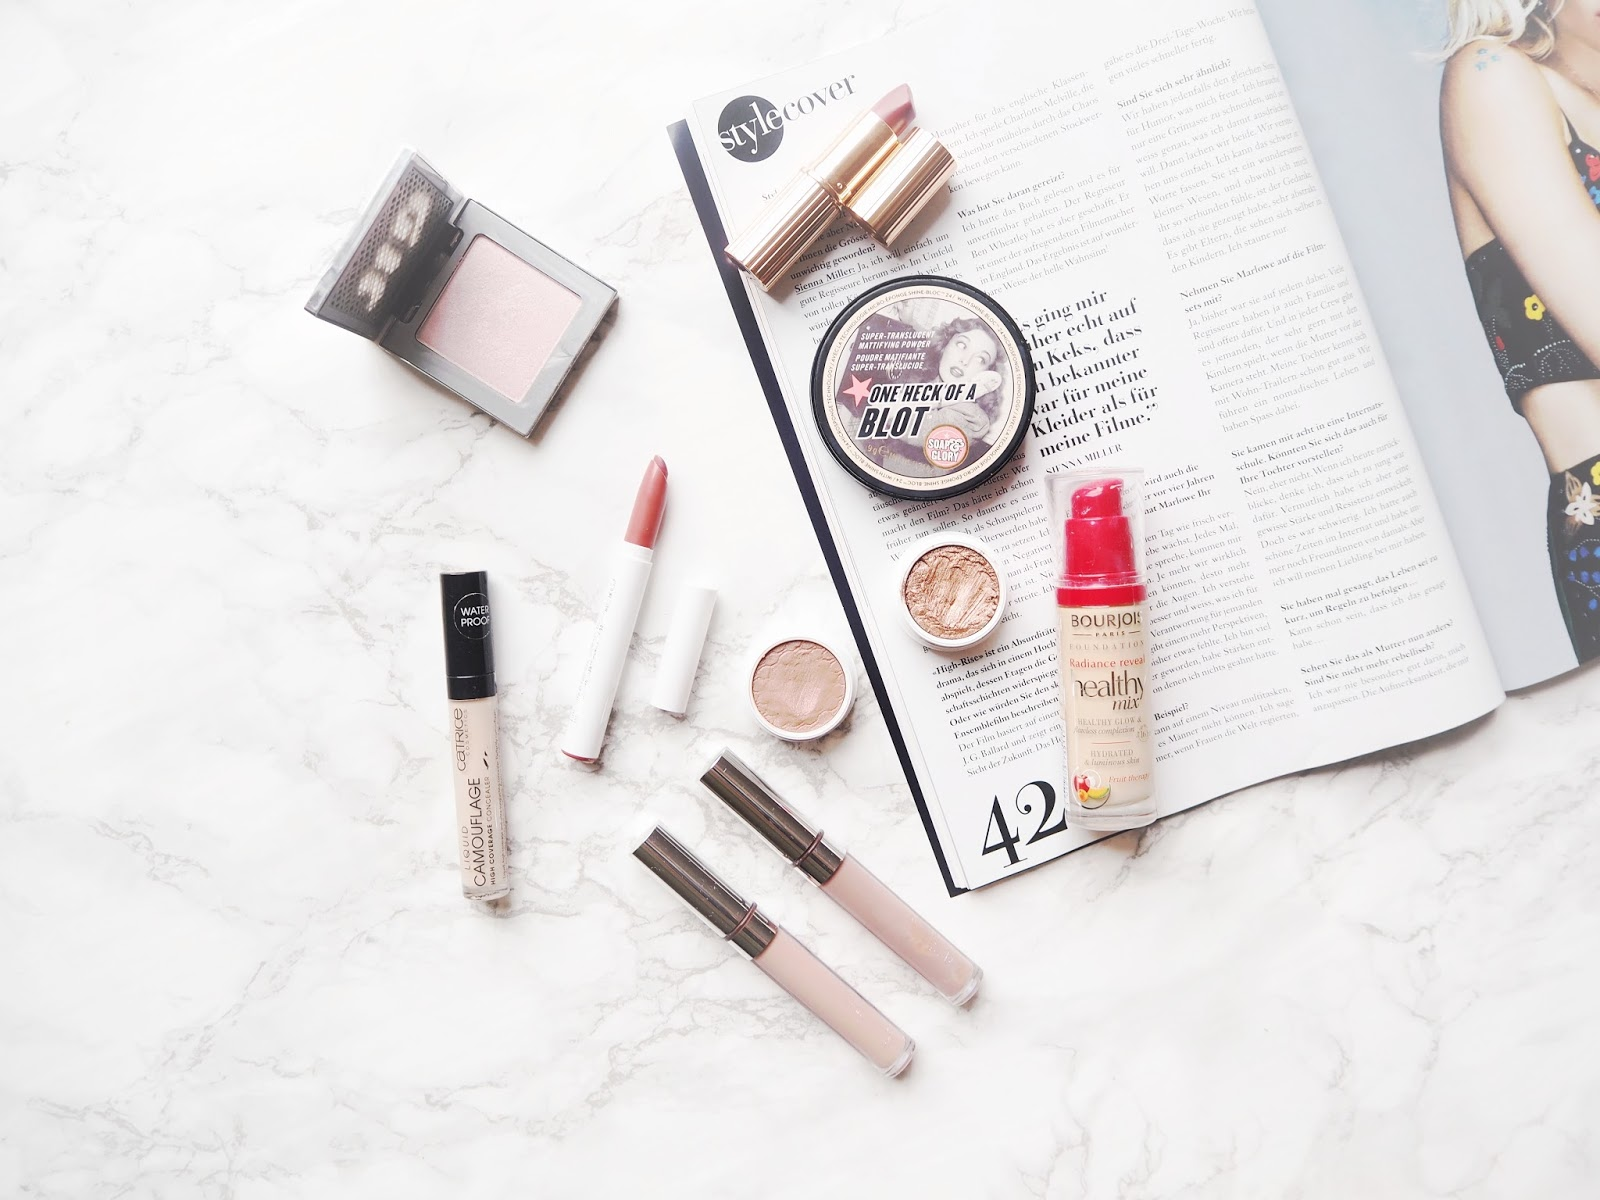 June 2016 Beauty Favourites, monthly favourites, urban decay, colourpop, charlotte tilbury, soap and glory, catrice, bourjois, review, favourites